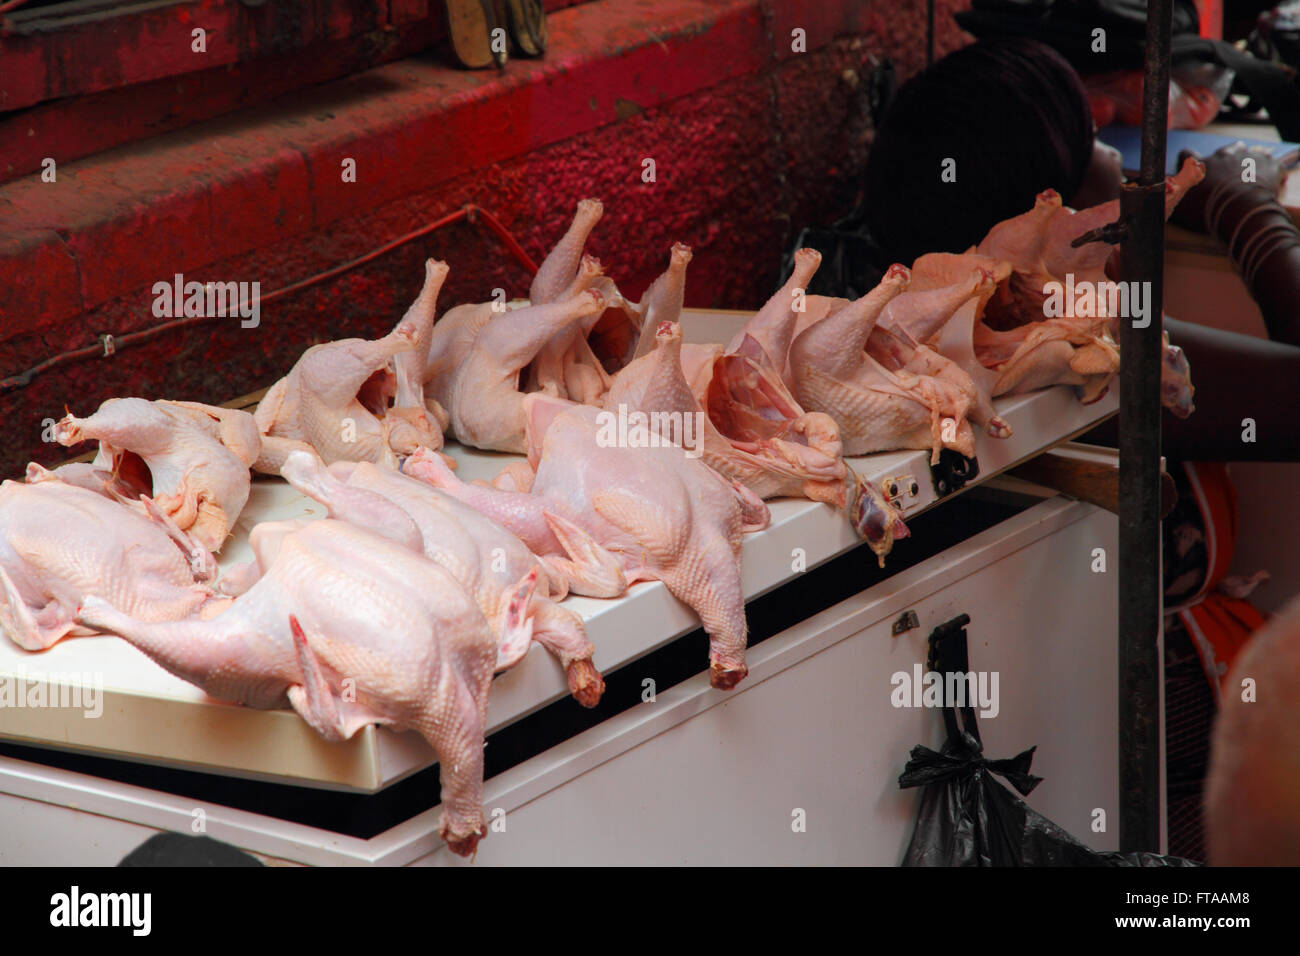 Chicken carcasses for sale in an open air african market and display on top of a freezer lid. - Stock Image